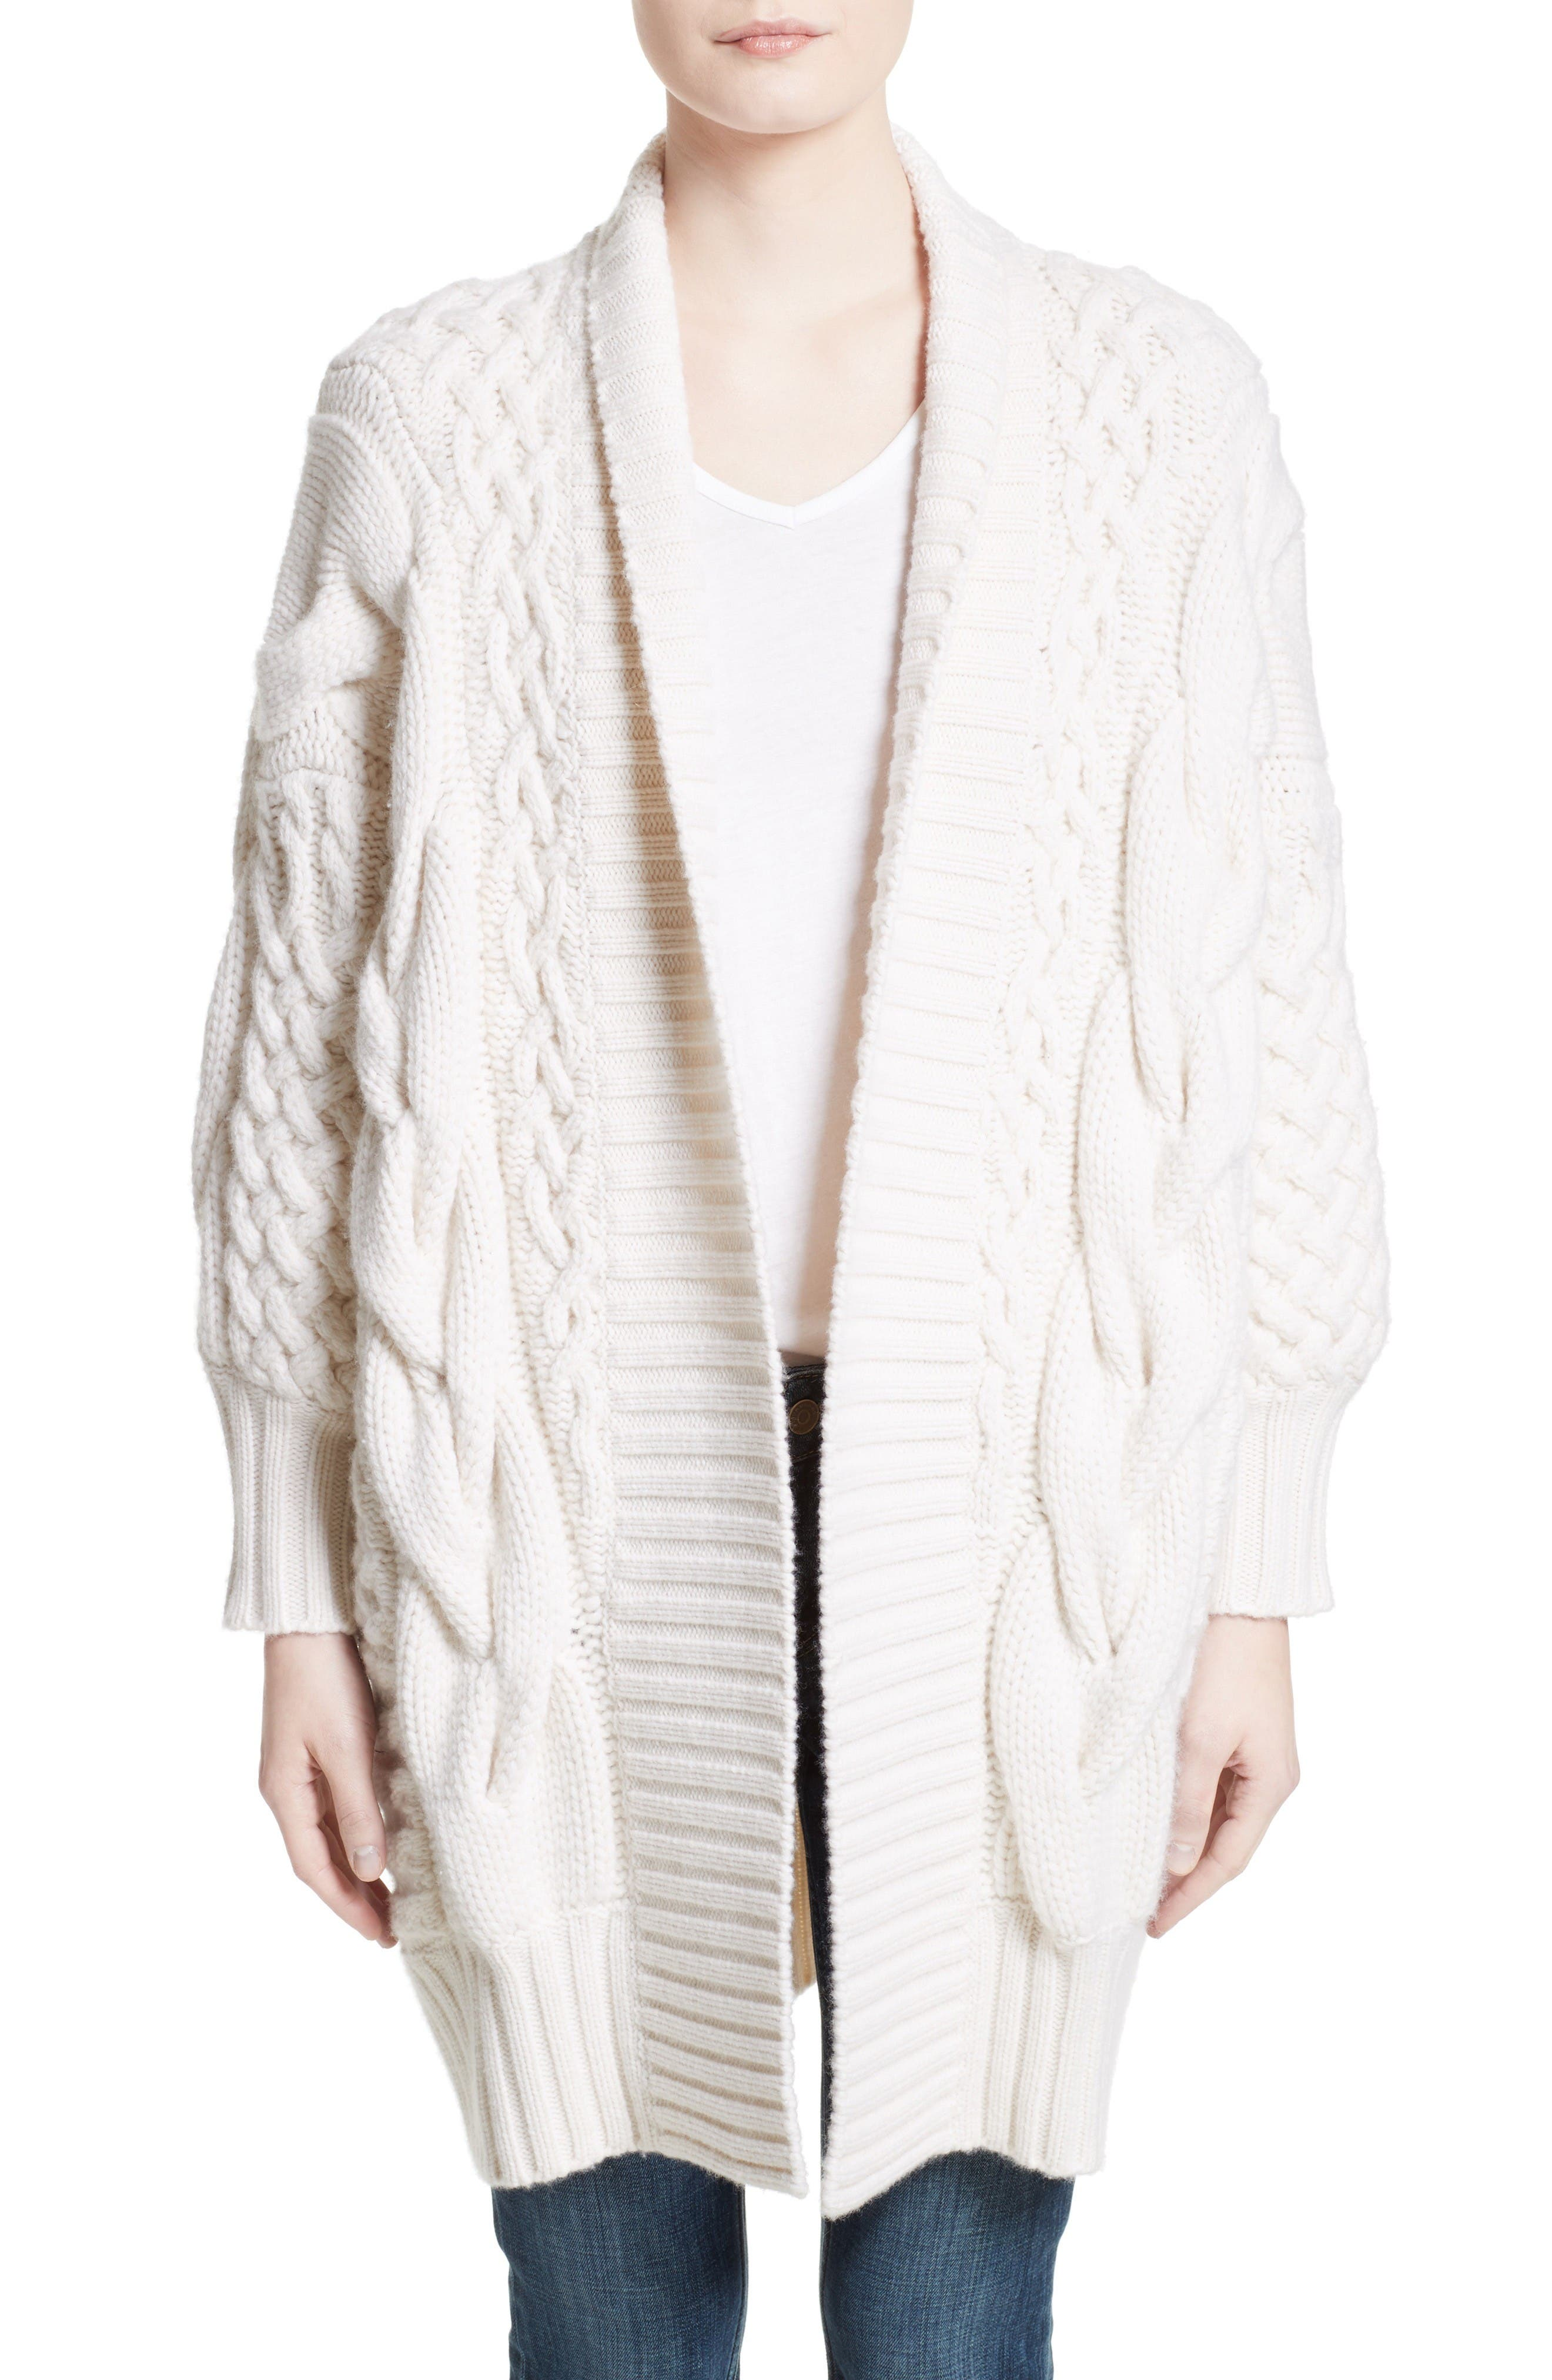 Camrosbrook Wool & Cashmere Open Cardigan,                         Main,                         color, Natural White